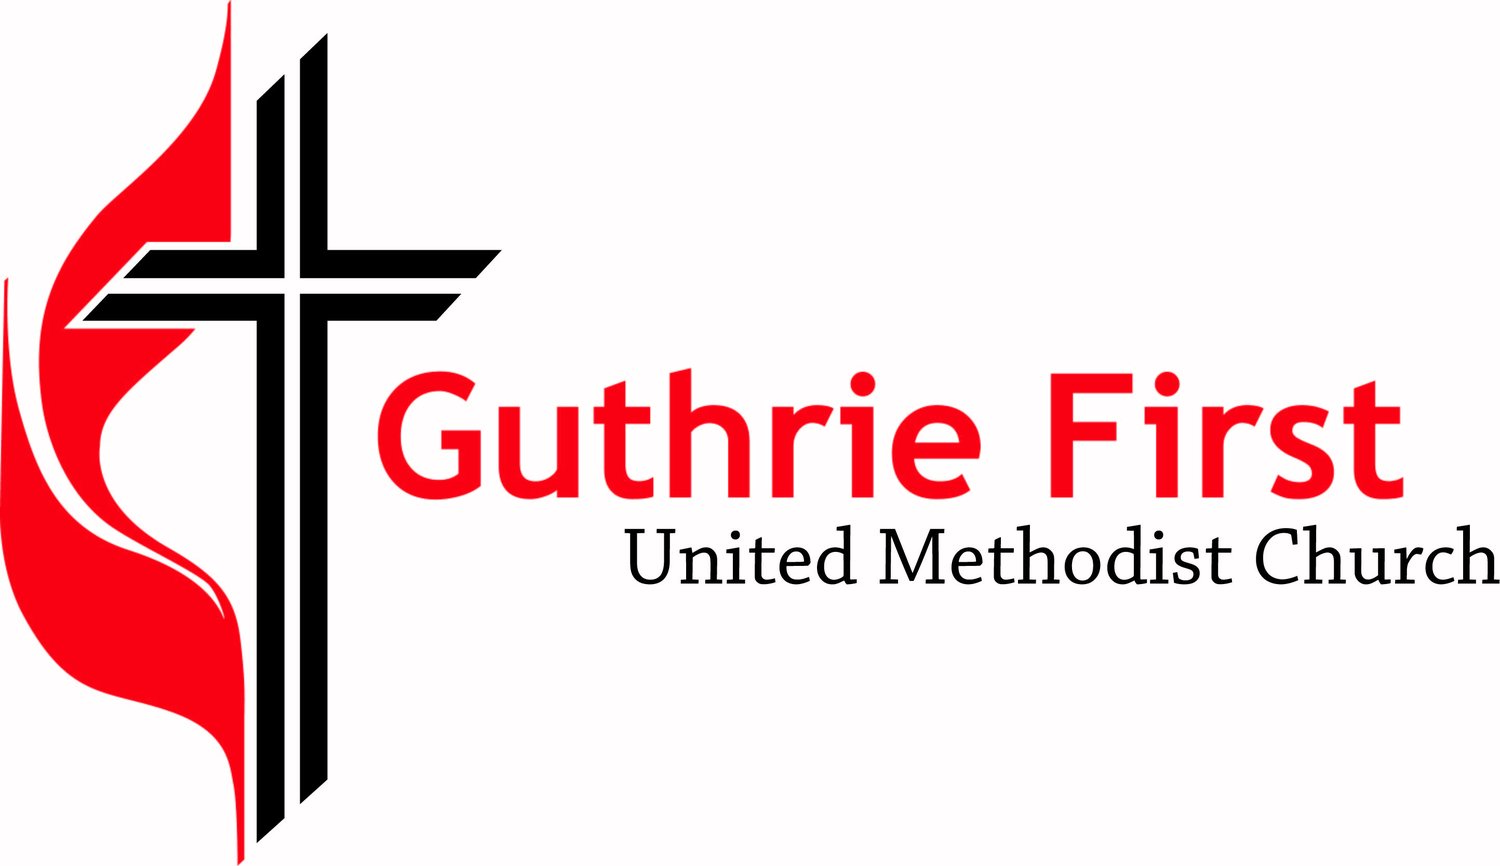 Guthrie First United Methodist Church